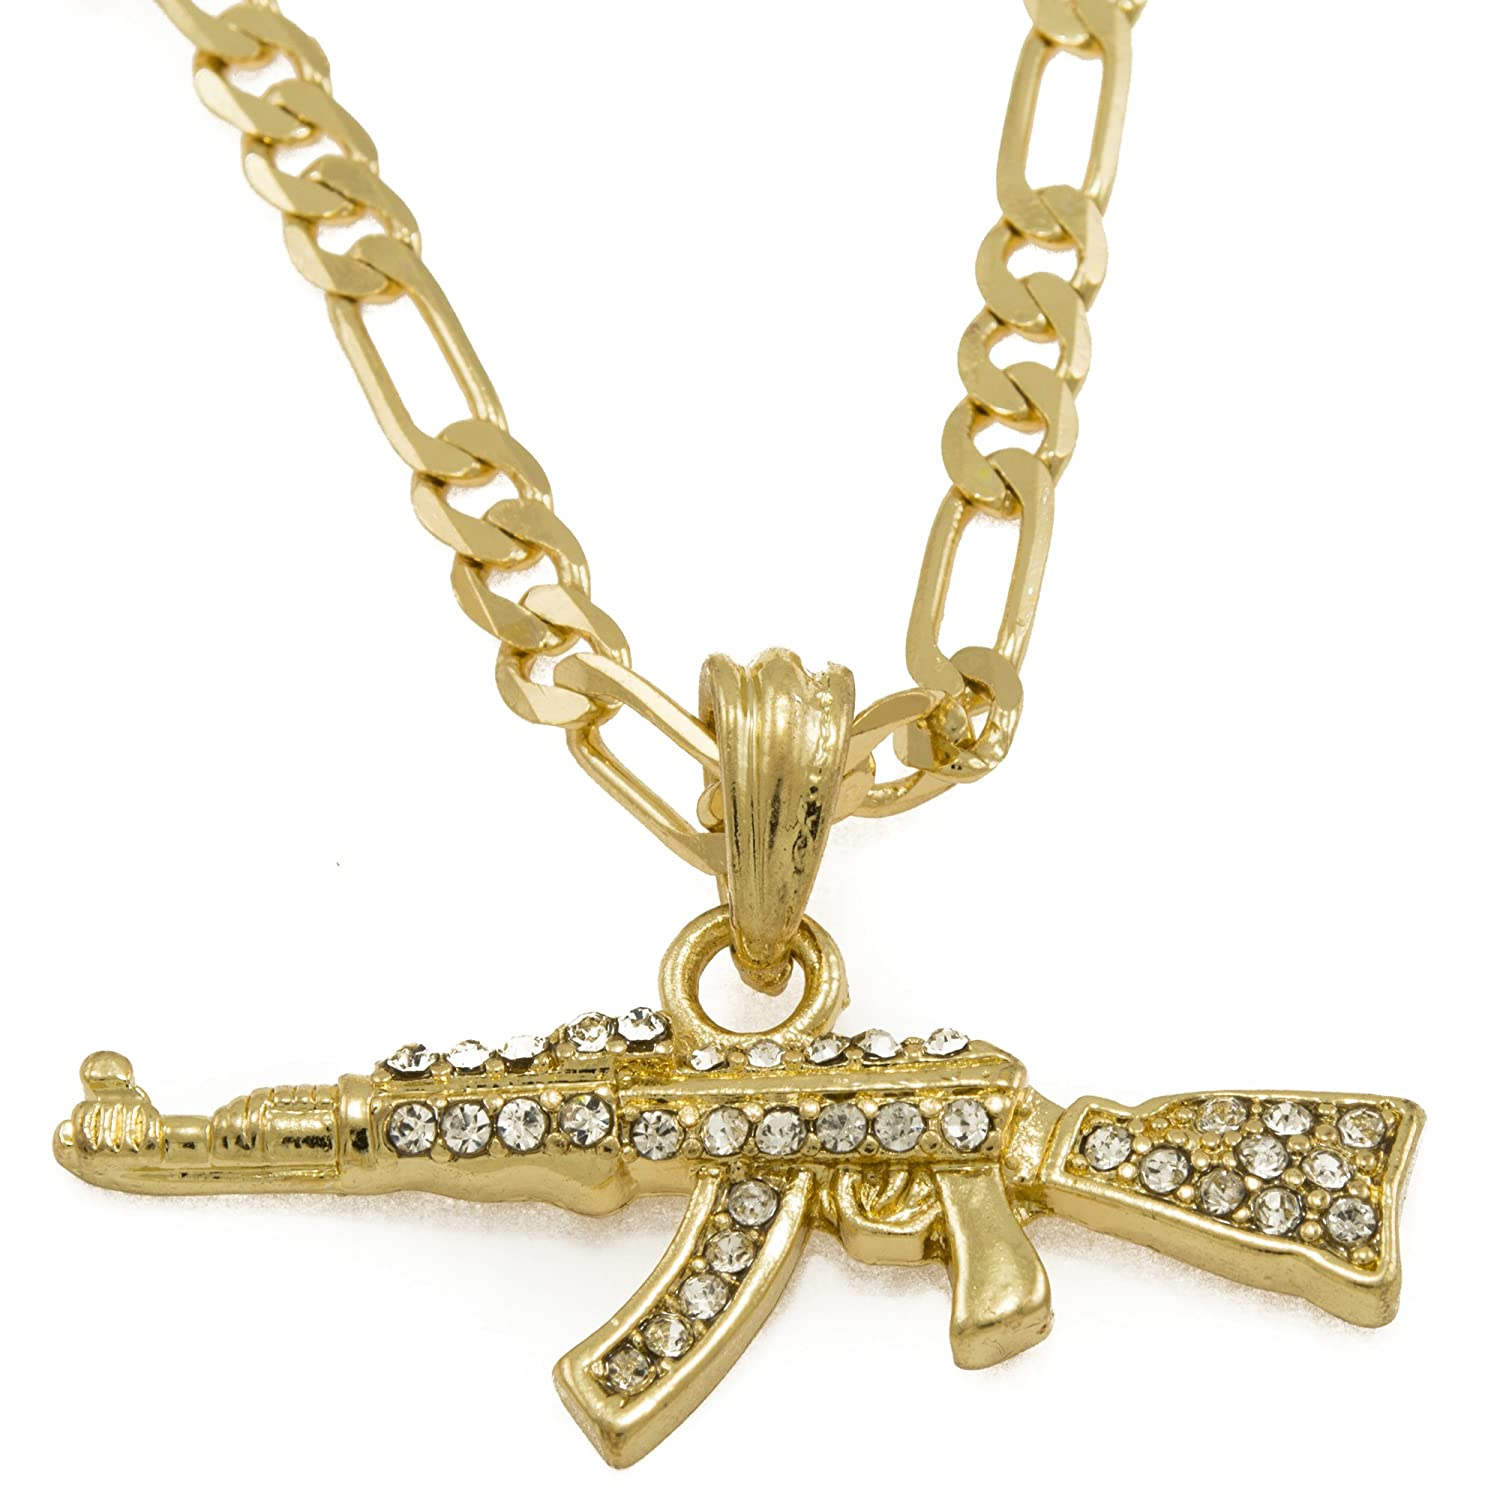 gun link men color necklace bling chain hop gold from necklaces in women gifts for pendant shape item hip silver jewelry